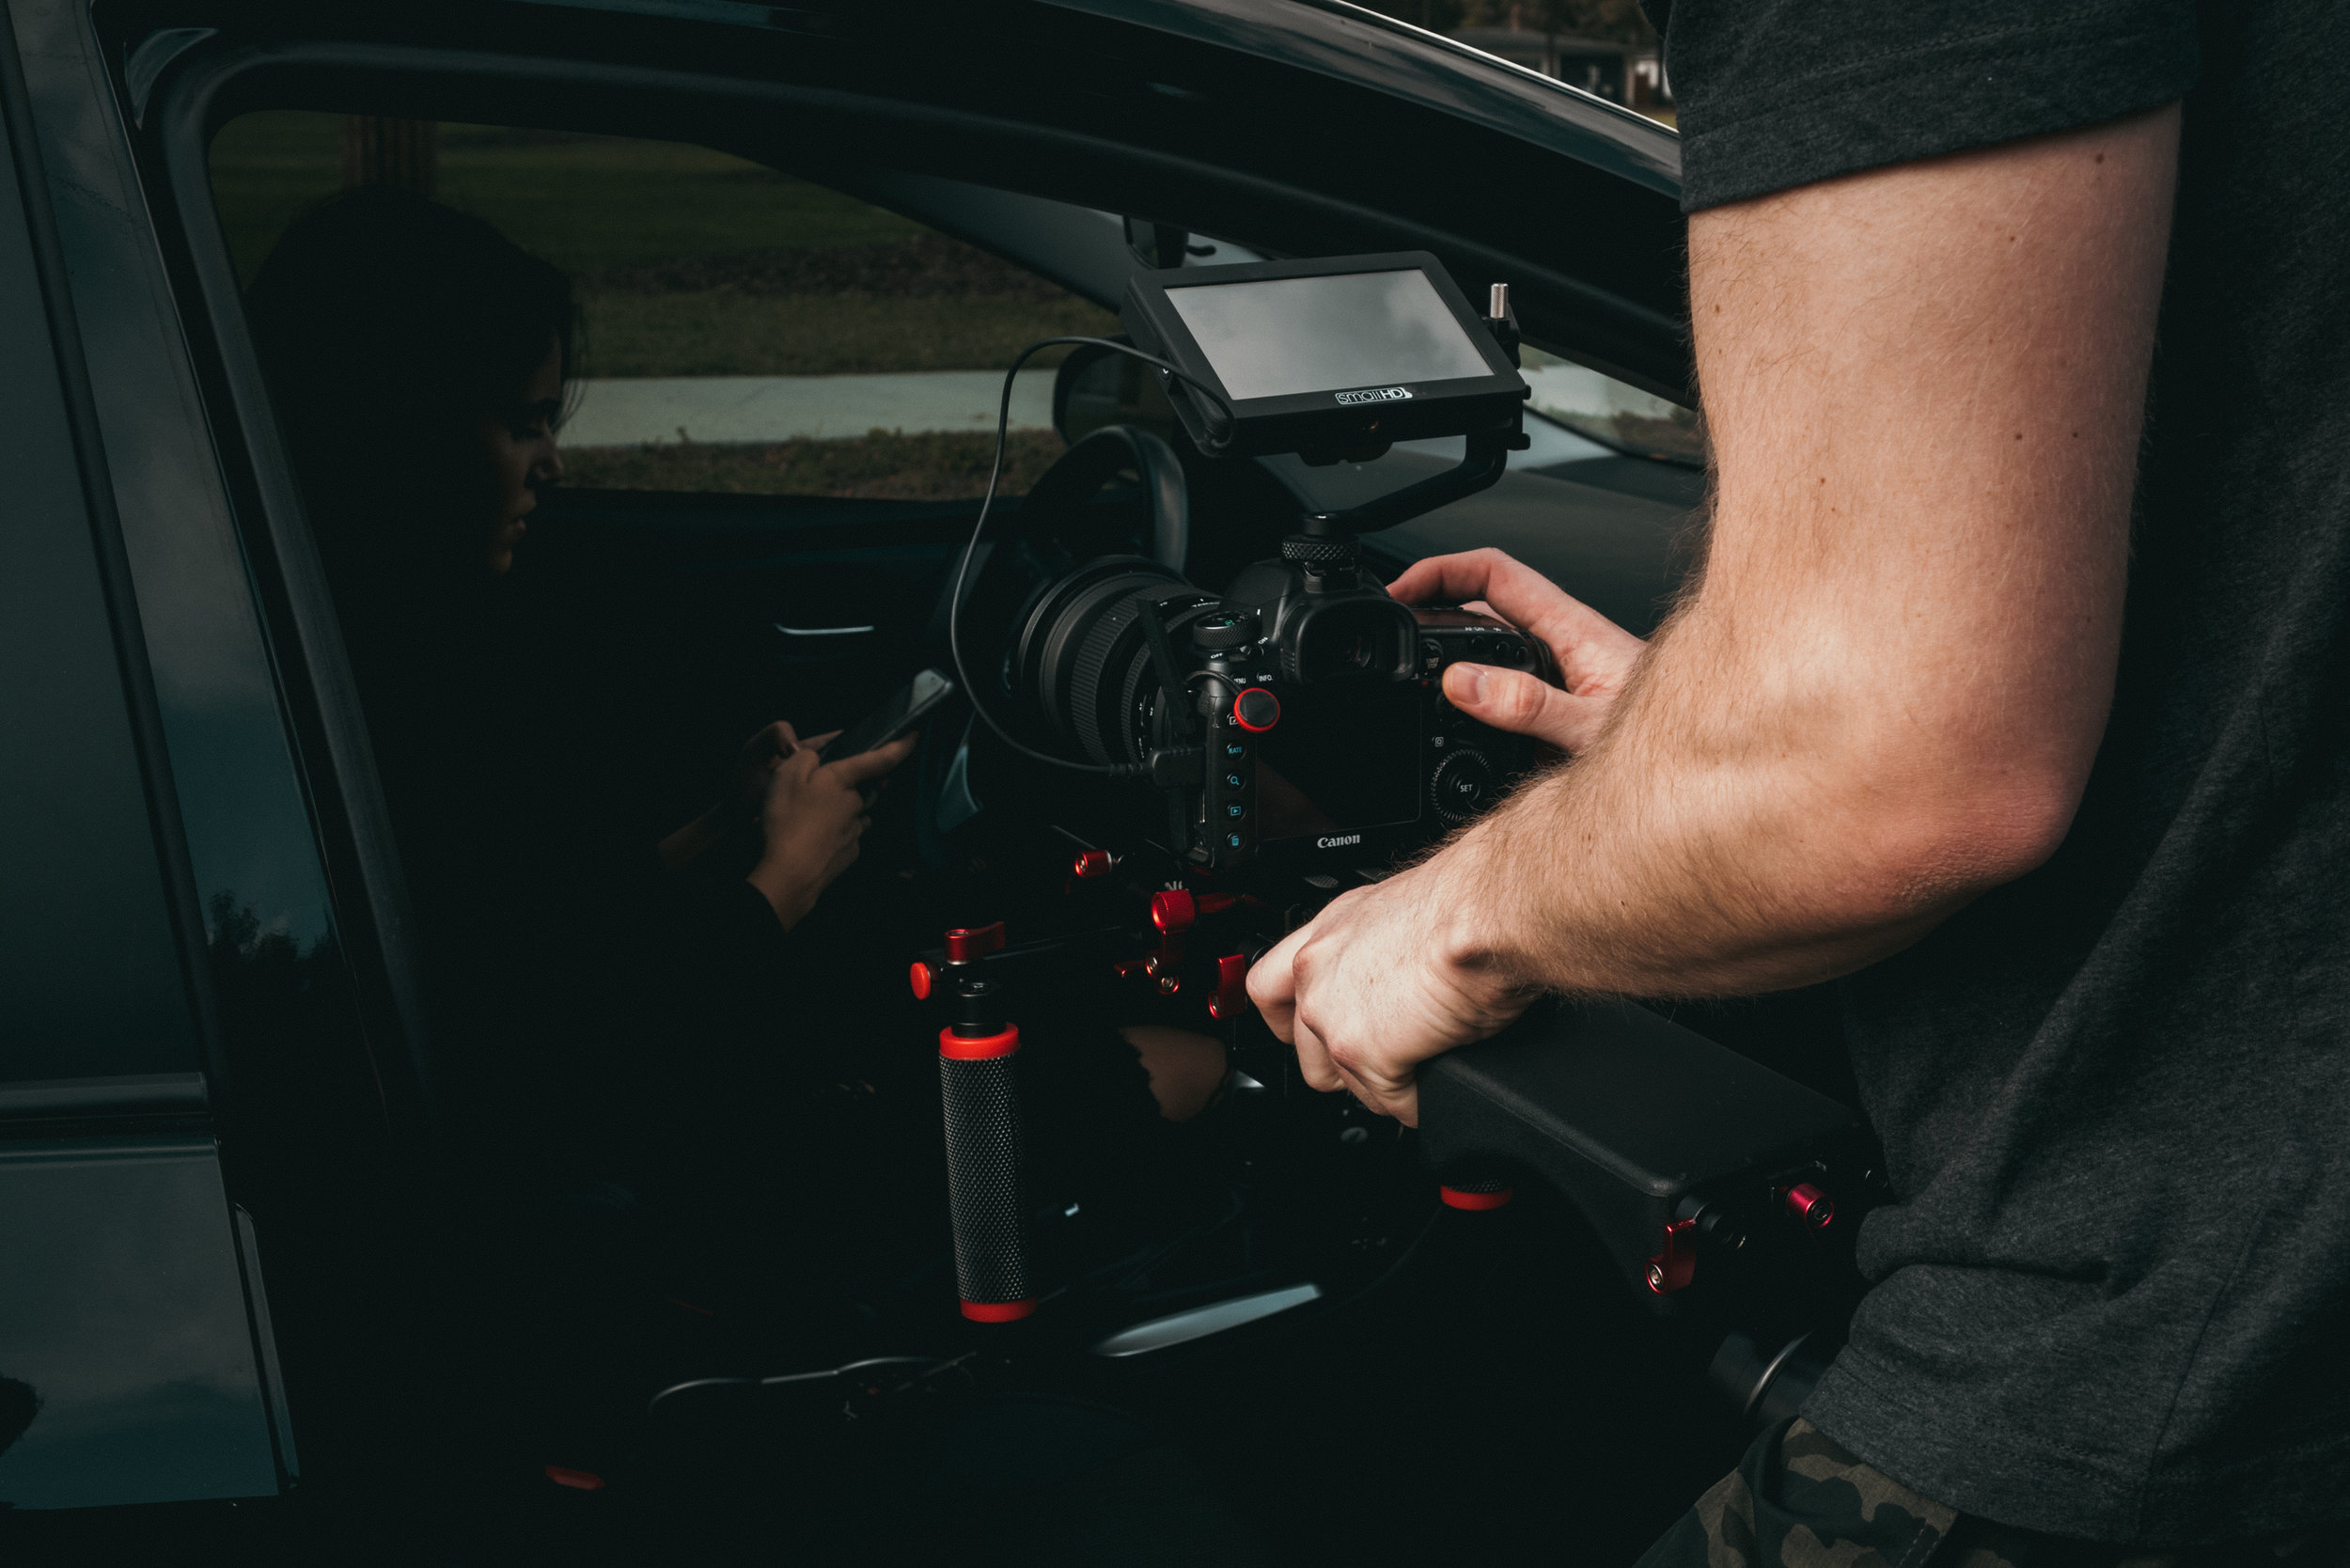 The Video Stewards bring 20+ years of professional video-making experience to your next video project. - Our team has created content for a wide variety of local, national, and international clients across a variety of industries, from global operations to local businesses and non-profits.